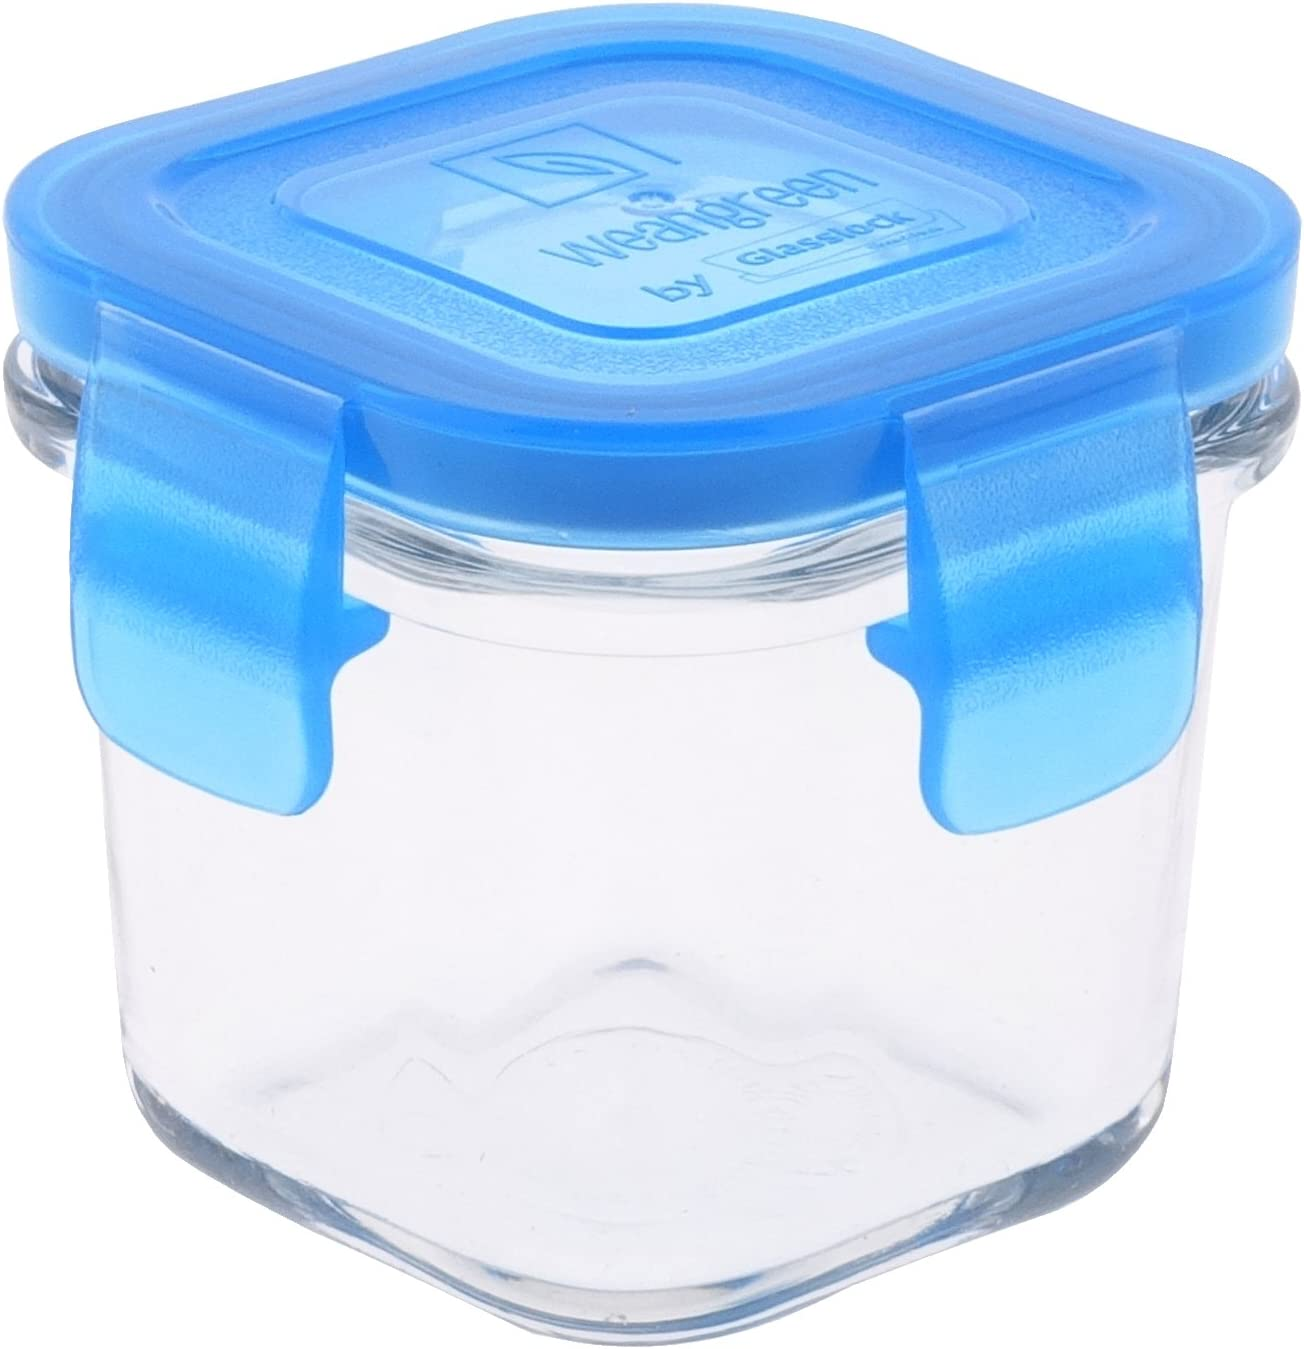 Wean Green Wean Cubes Glass Food Containers, Single, Blueberry